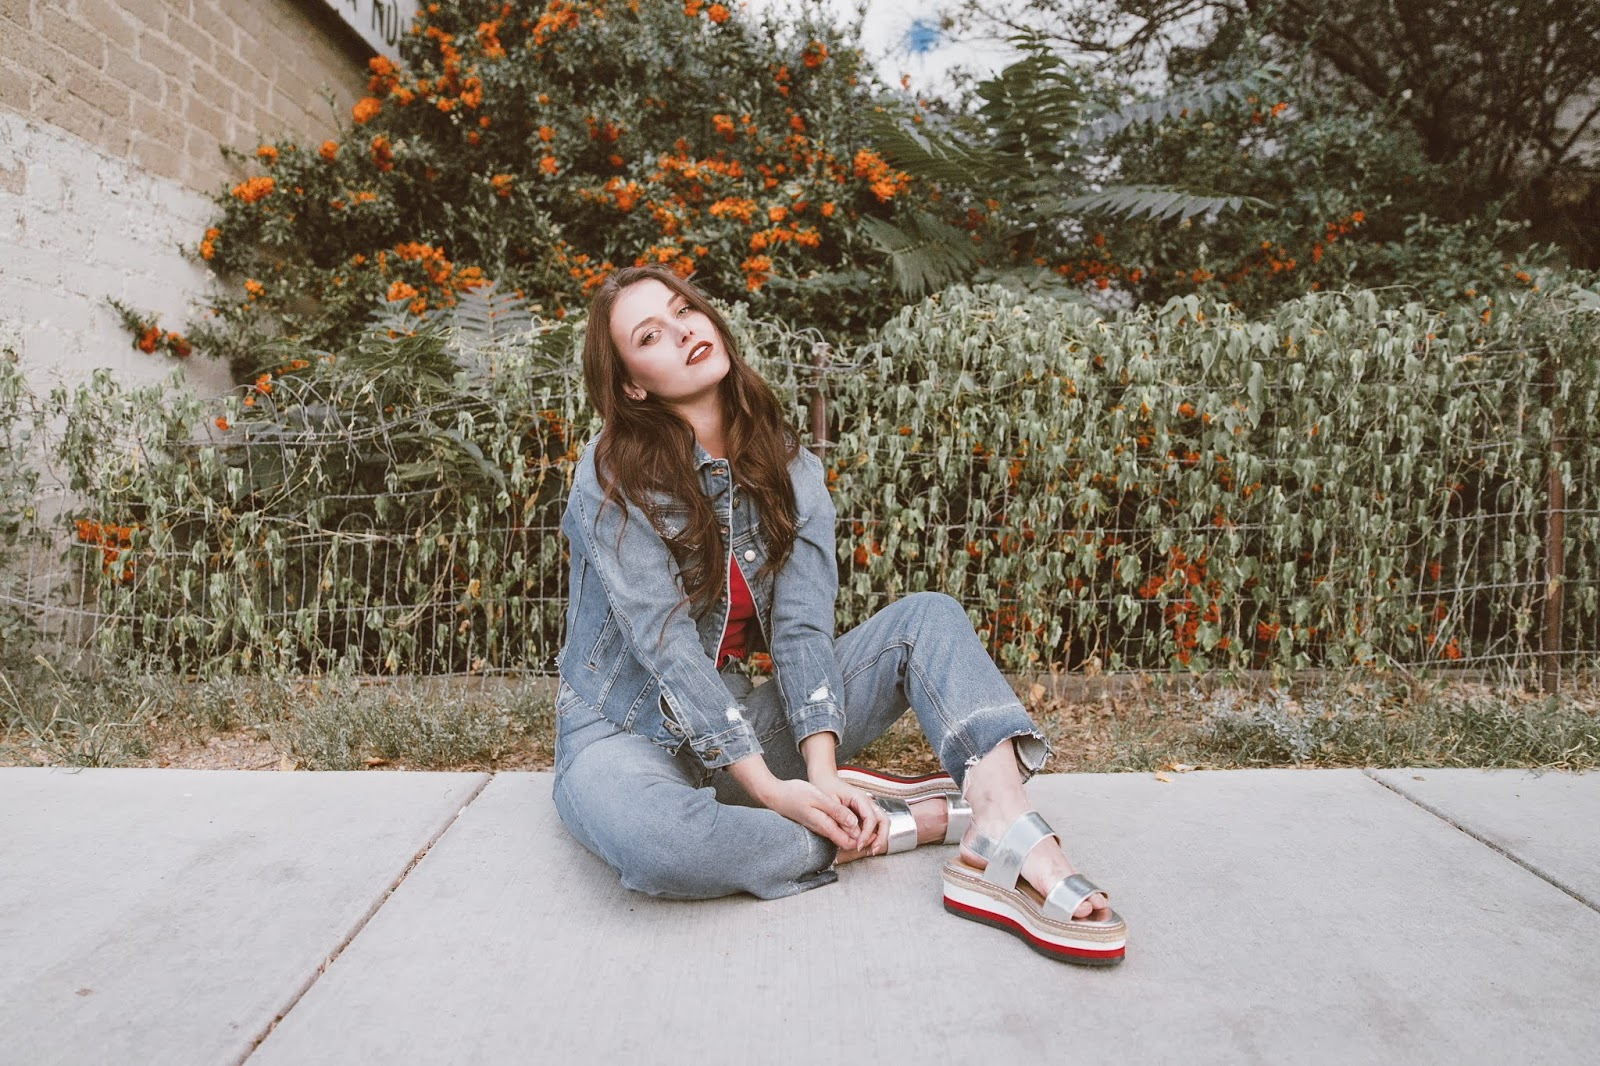 Arizona Girl fashion blog, Joe's Jeans, Stylinity, platform sandals, denim jacket, fall style 2018, Canadian tuxedo, Shelly Stuckman